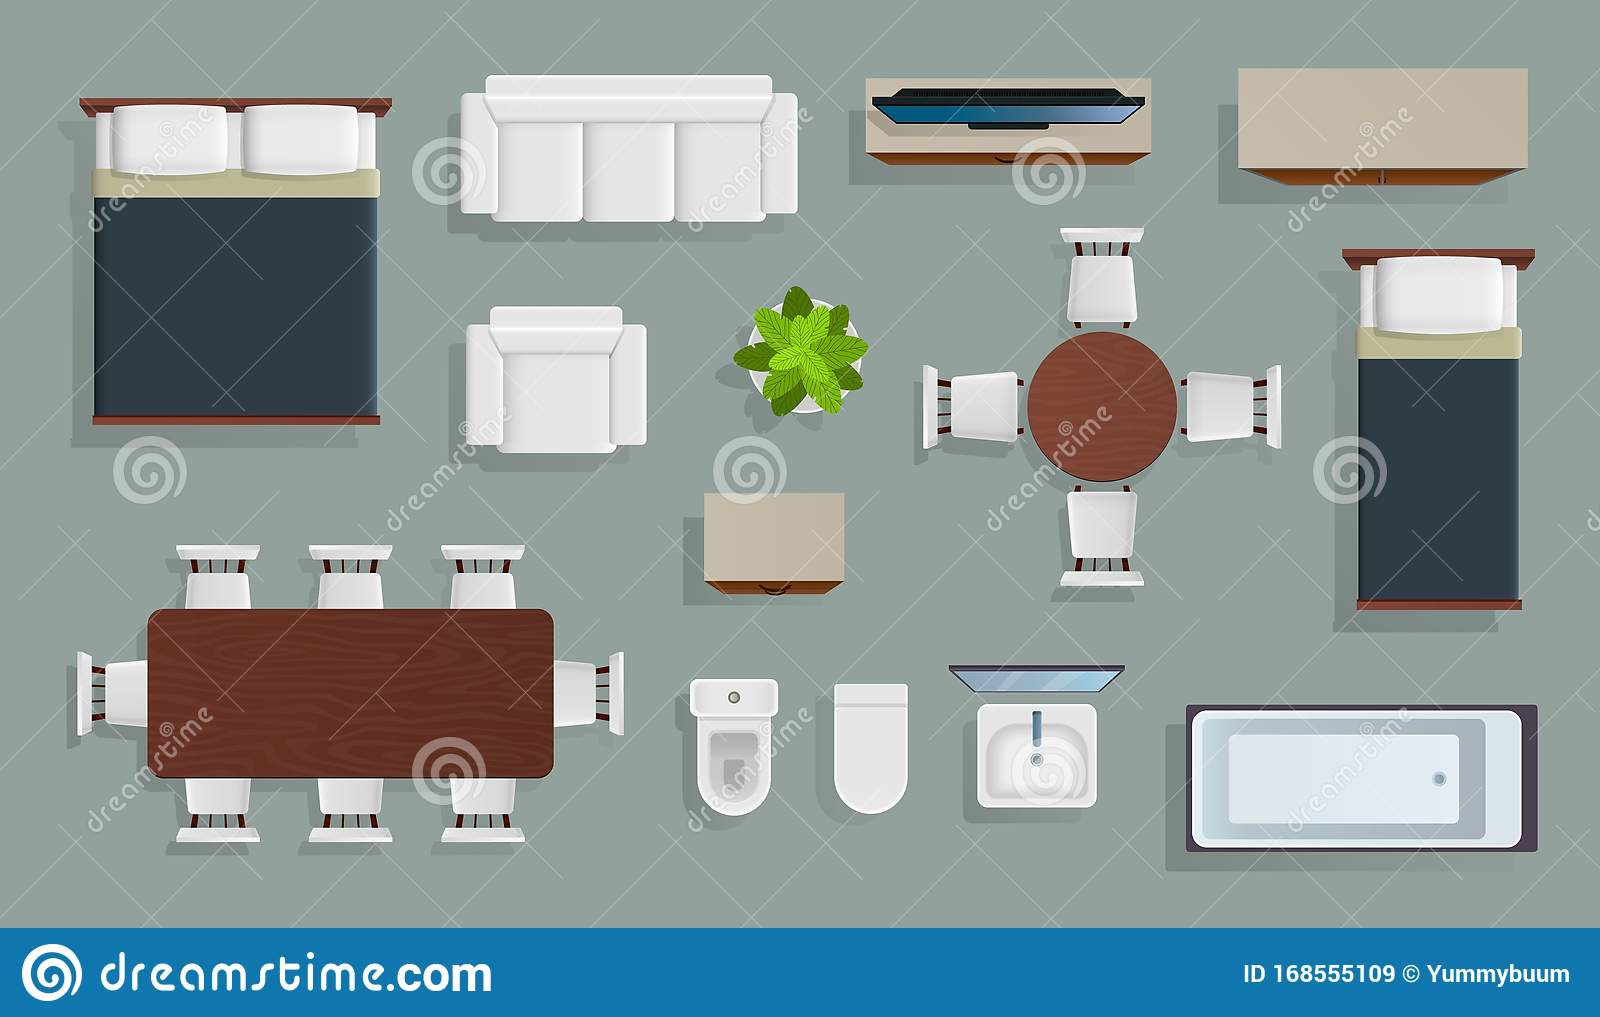 Top View House Stock Illustrations 10 715 Top View House Stock Illustrations Vectors Clipart Dreamstime